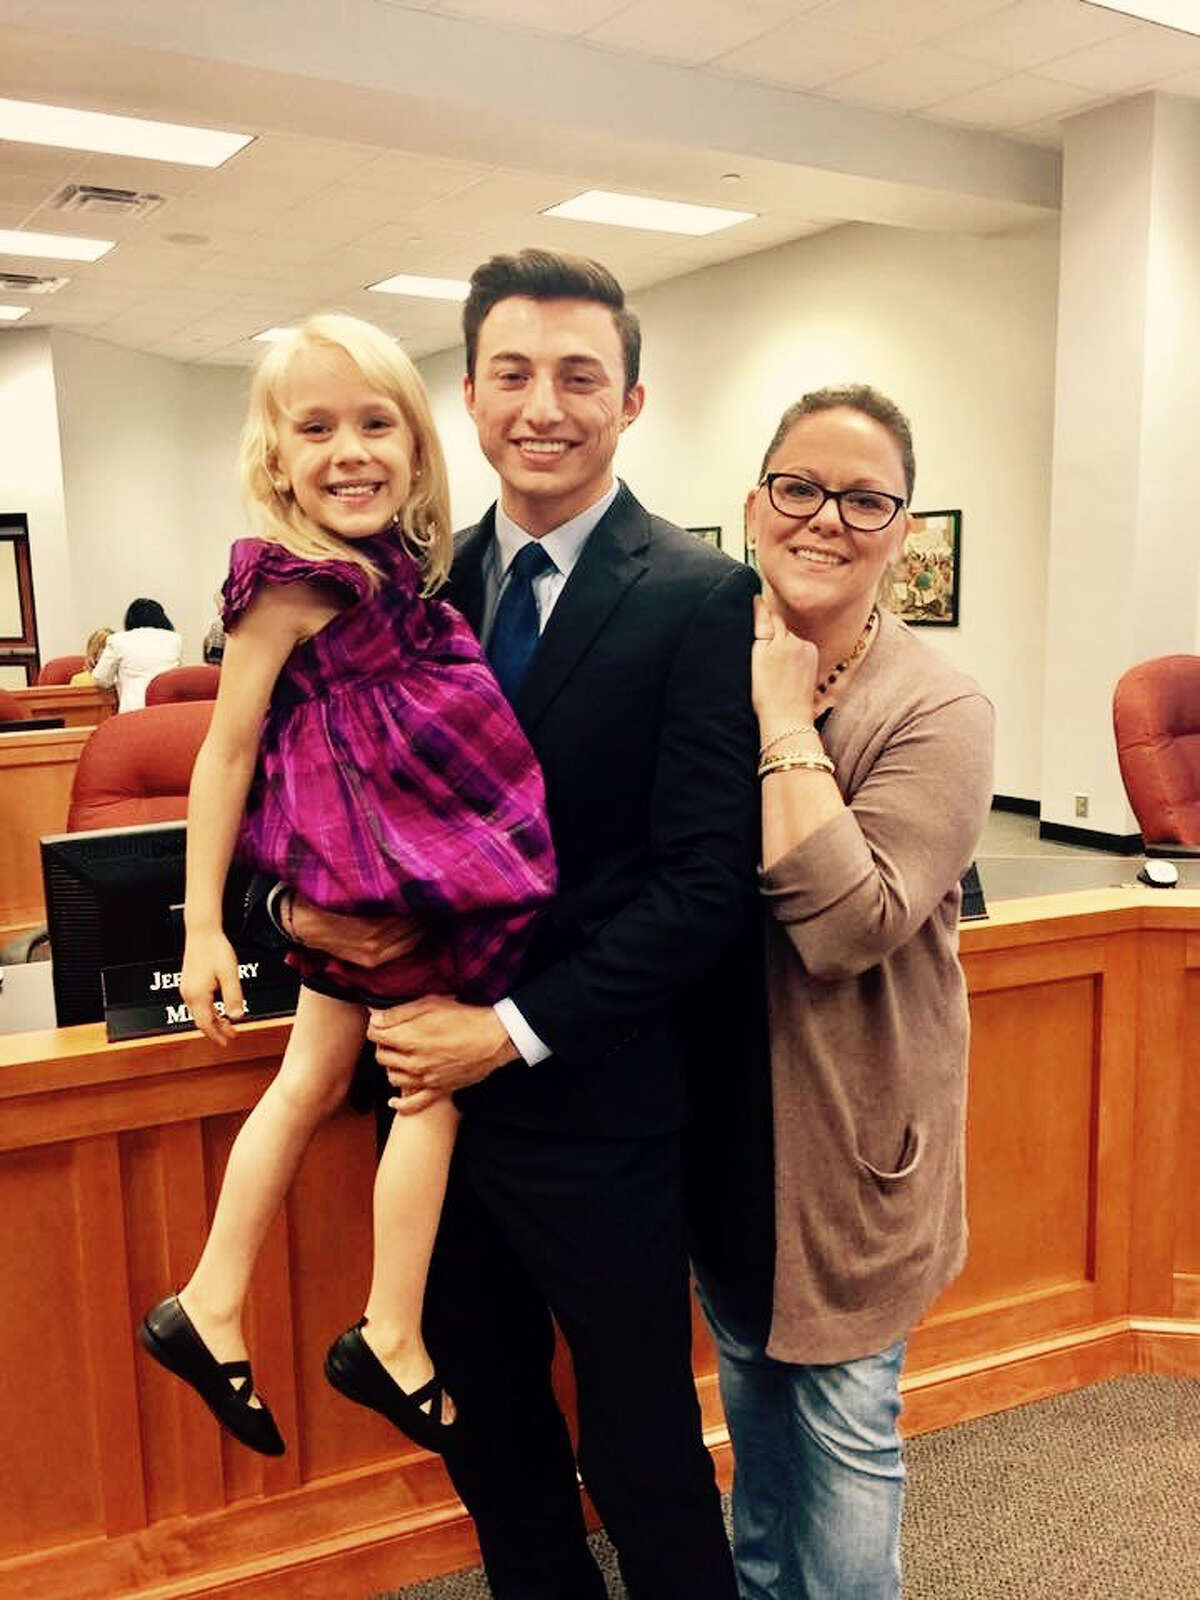 """Pearland school trustee Mike Floyd holds 6-year-old Kai Shappley alongside Kai's mother, Kimberly Shappley. Floyd's campaign featured pro-LGBT positions. """"I am a firm believer that trans students should be able to use the restroom they identify with,"""" Floyd says."""